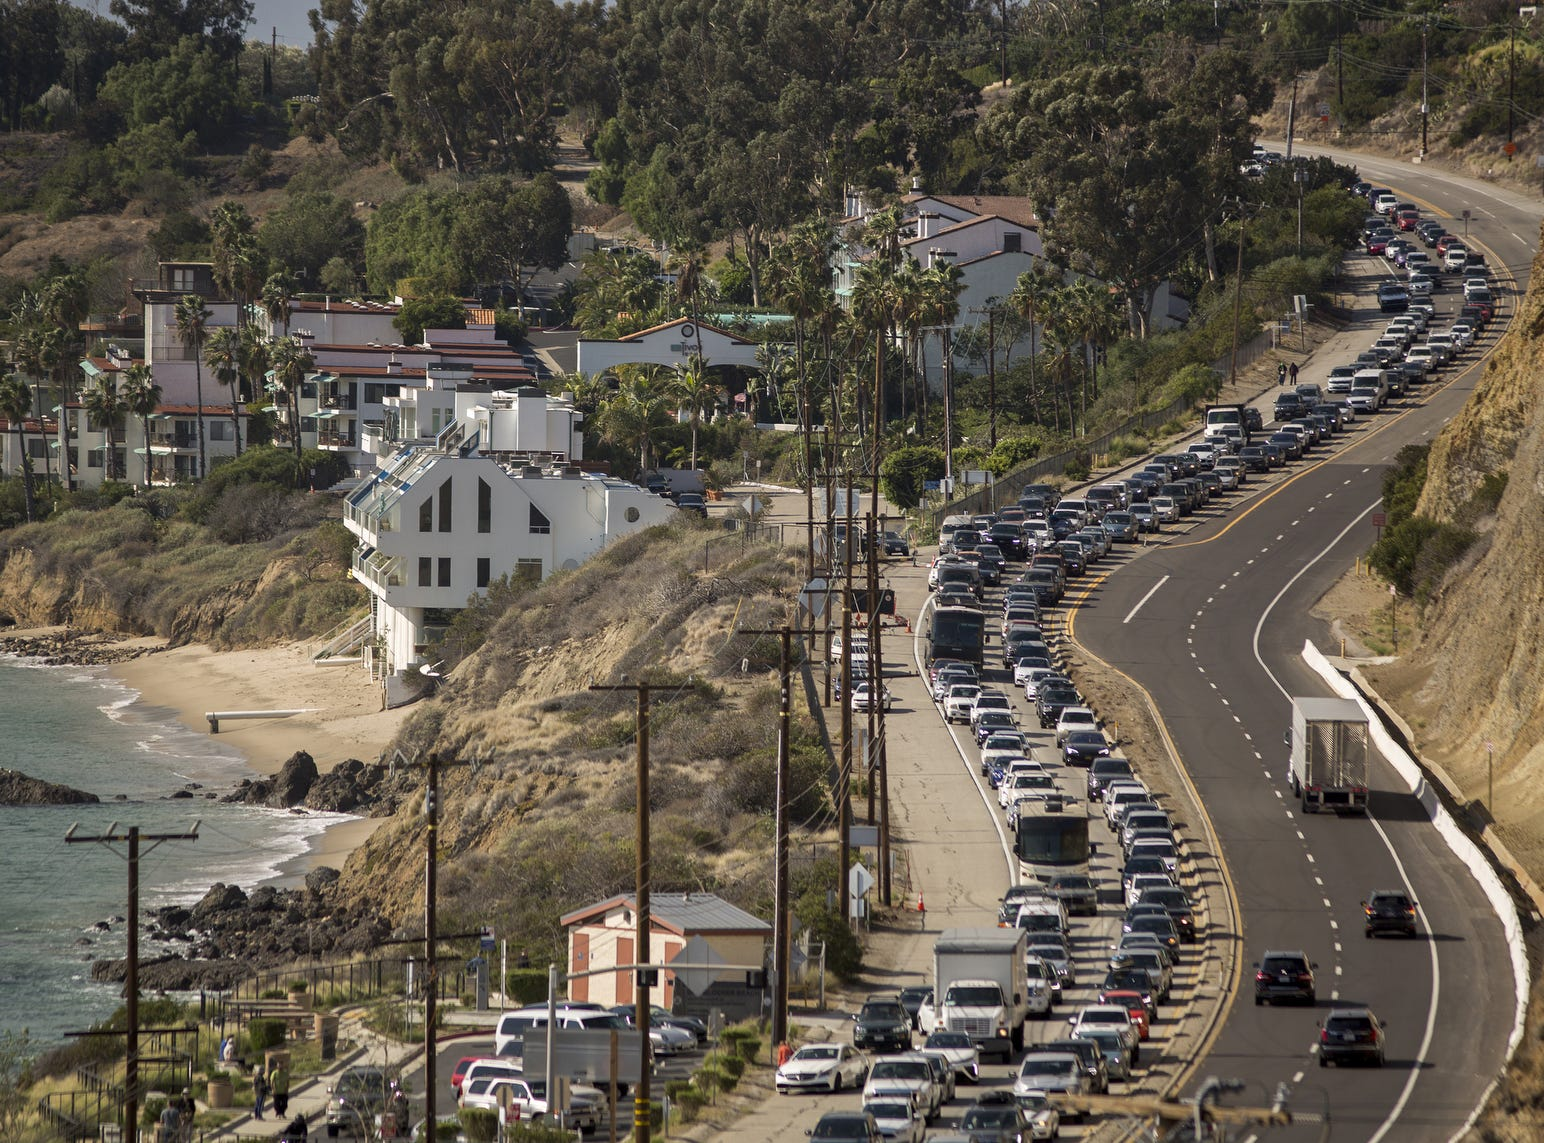 Traffic jams the southbound lanes of Pacific Coast Highway as all of the city of Malibu is evacuated to flee advancing flames during the Woolsey Fire on Nov. 9, 2018 in Malibu, Calif. About 75,000 homes have been evacuated in Los Angeles and Ventura counties due to two fires in the region.